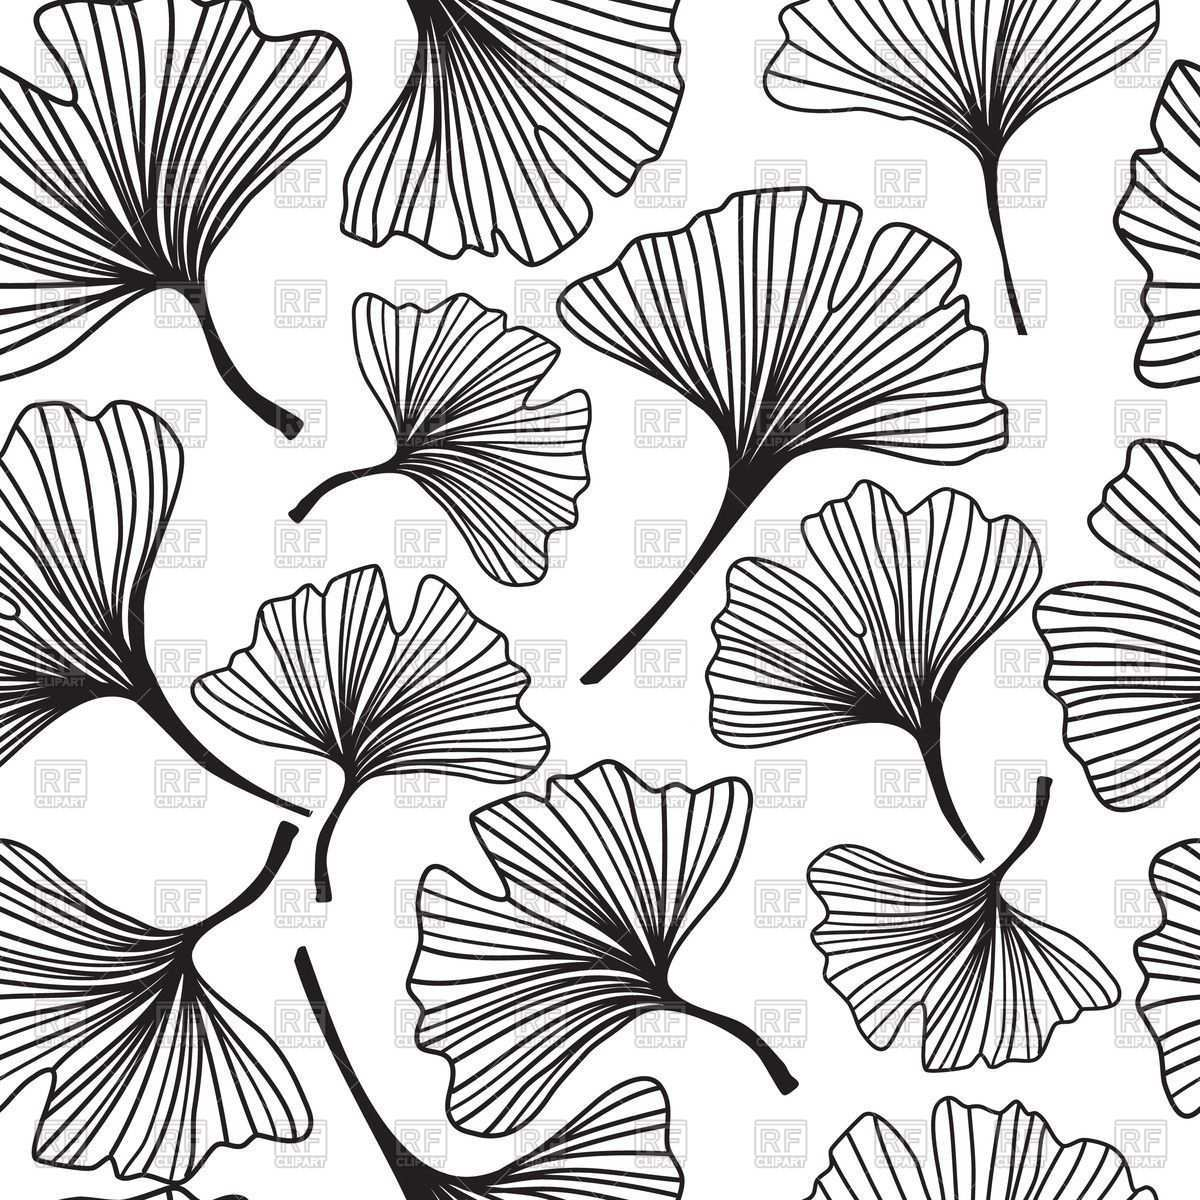 Seamless Floral Background With Sketch Of Ginkgo Biloba 46010 Backgrounds Textures Abstract Download Royalty Flower Drawing Leaf Drawing Floral Background